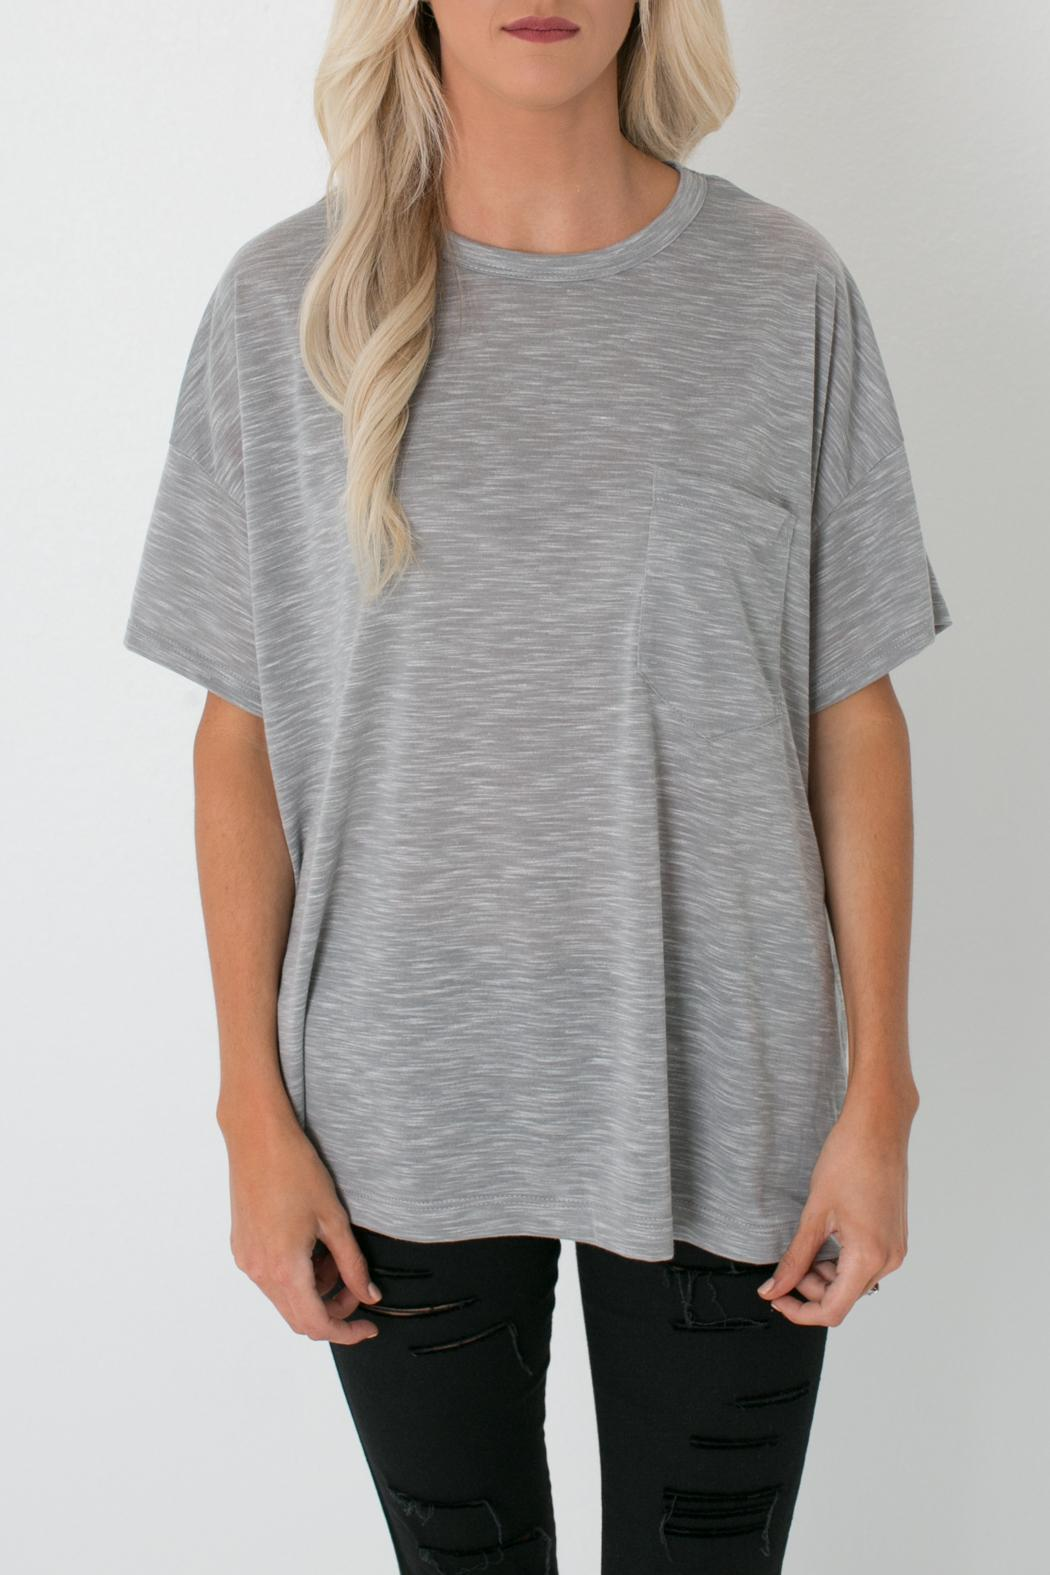 Fore Collection Oversized Pocket Tee from Colorado by Apricot Lane ...